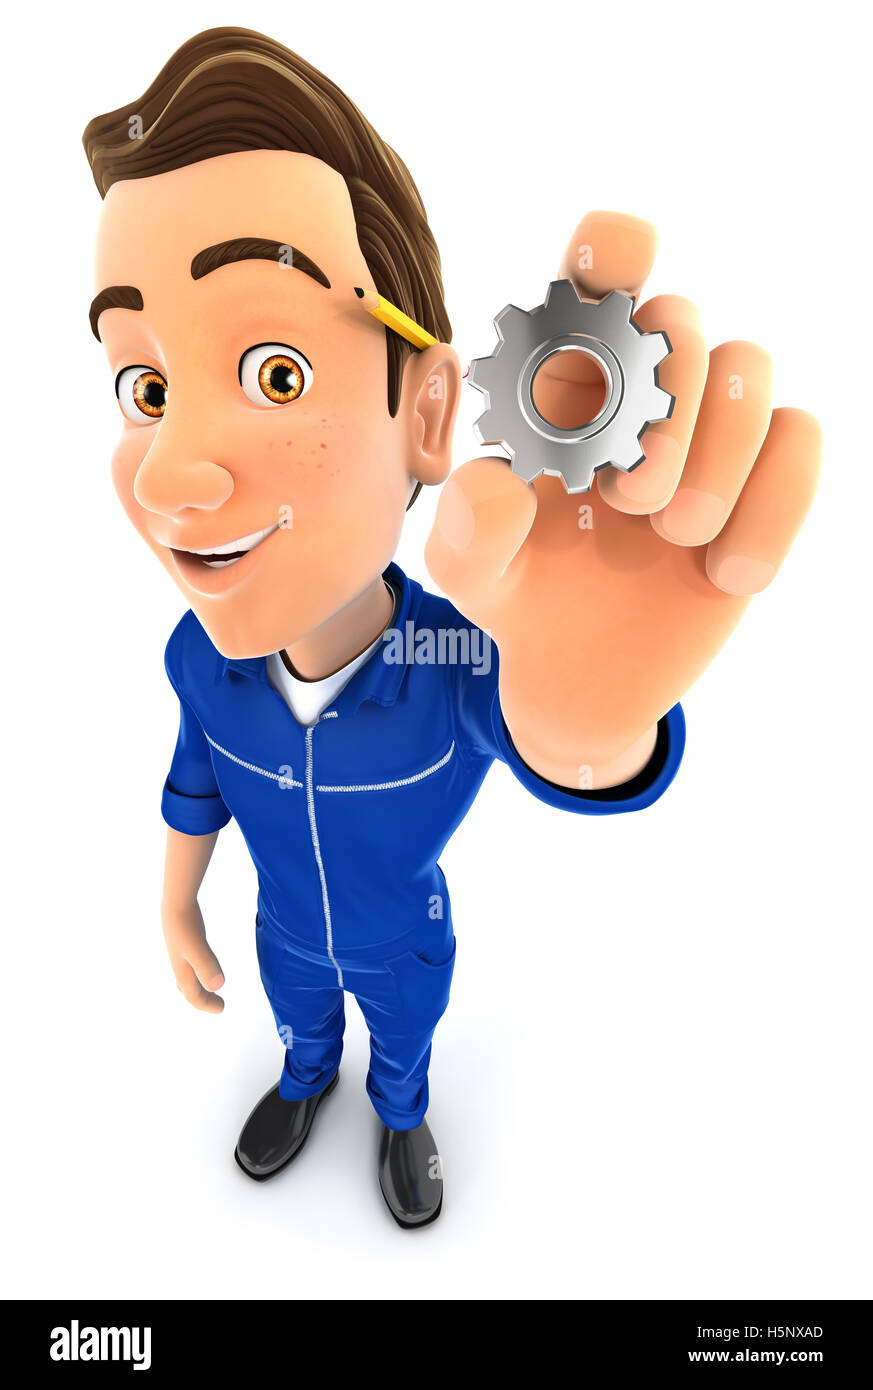 3d mechanic holding a gear, illustration with isolated white background Stock Photo